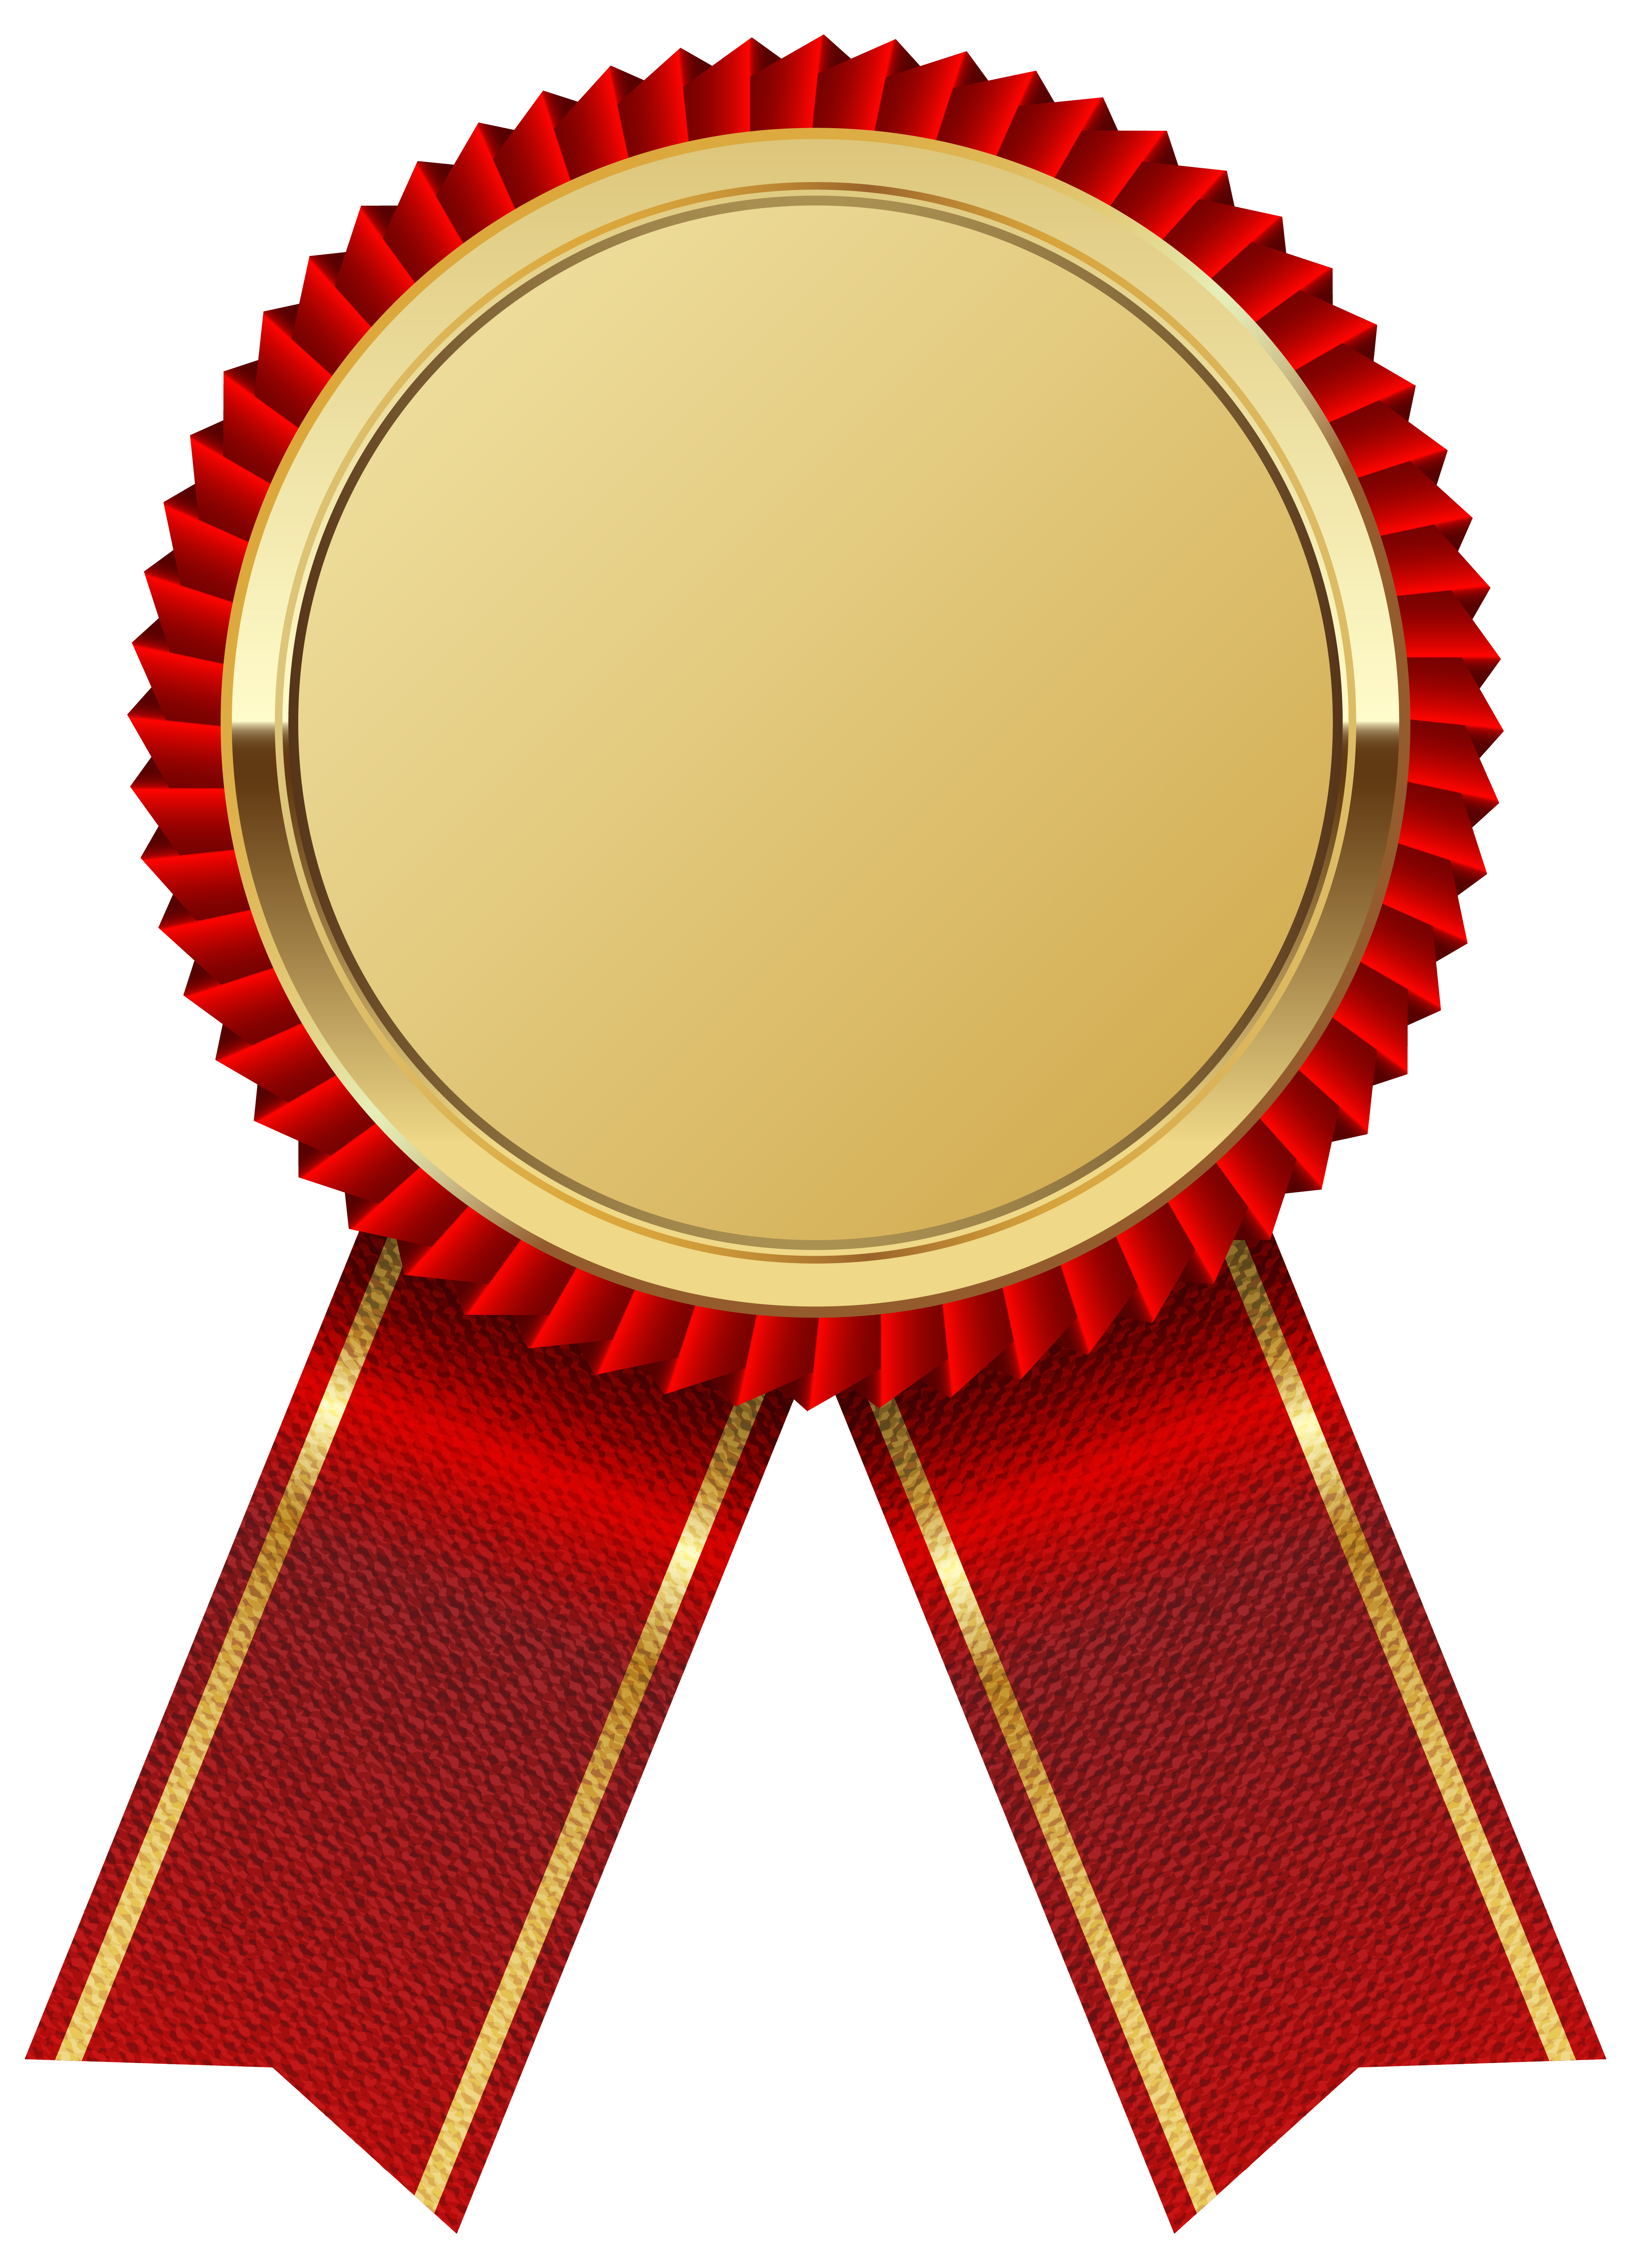 Gold Medal with Red Ribbon PNG Clipart Image Gallery